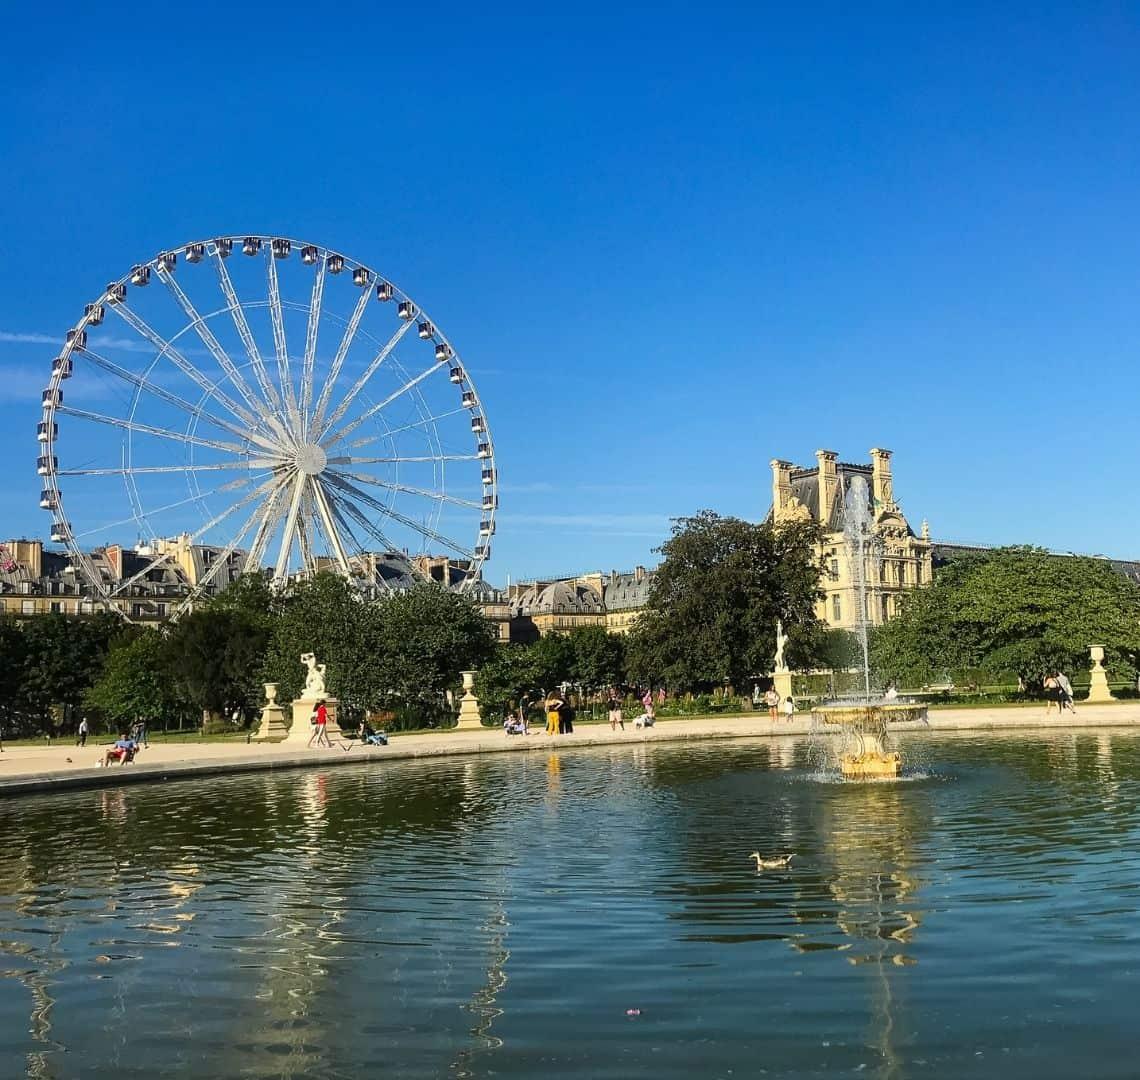 There is a large pond taking up the bottom half gf the page with a lone duck swimming in it. Behind is is a gravel path and some statues. Behind them is a wall of trees. Towering above the trees is the Paris wheel and a large cream building. The sky is bright blue with no clouds.